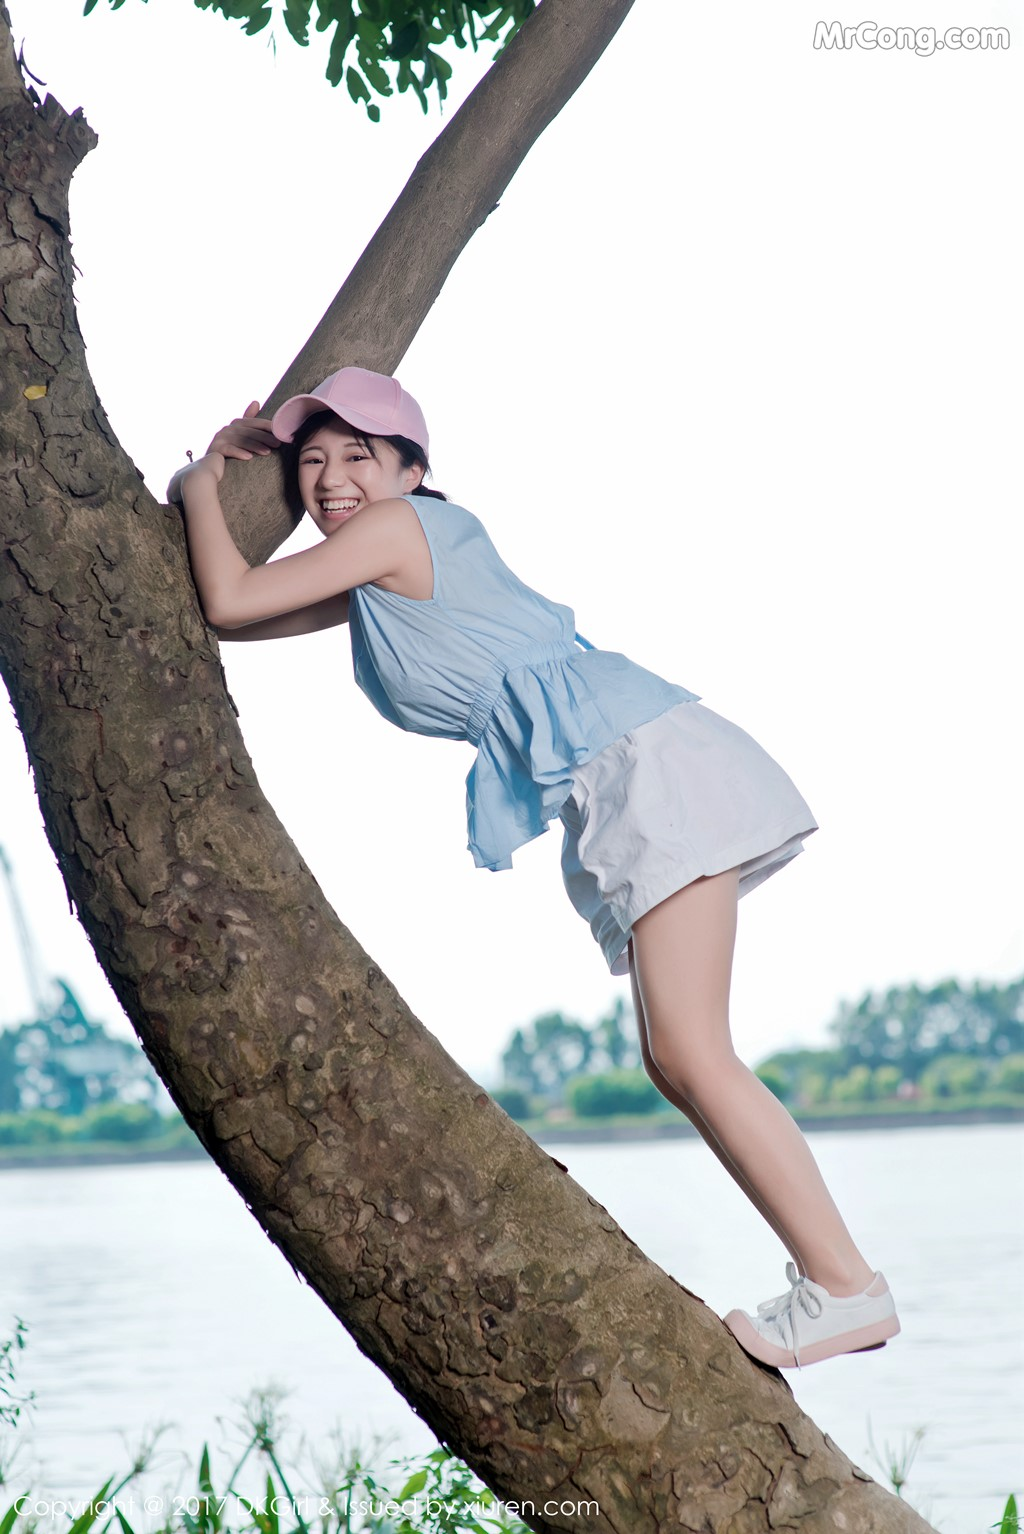 Image DKGirl-Vol.039-Cang-Jing-You-Xiang-MrCong.com-018 in post DKGirl Vol.039: Người mẫu Cang Jing You Xiang (仓井优香) (57 ảnh)